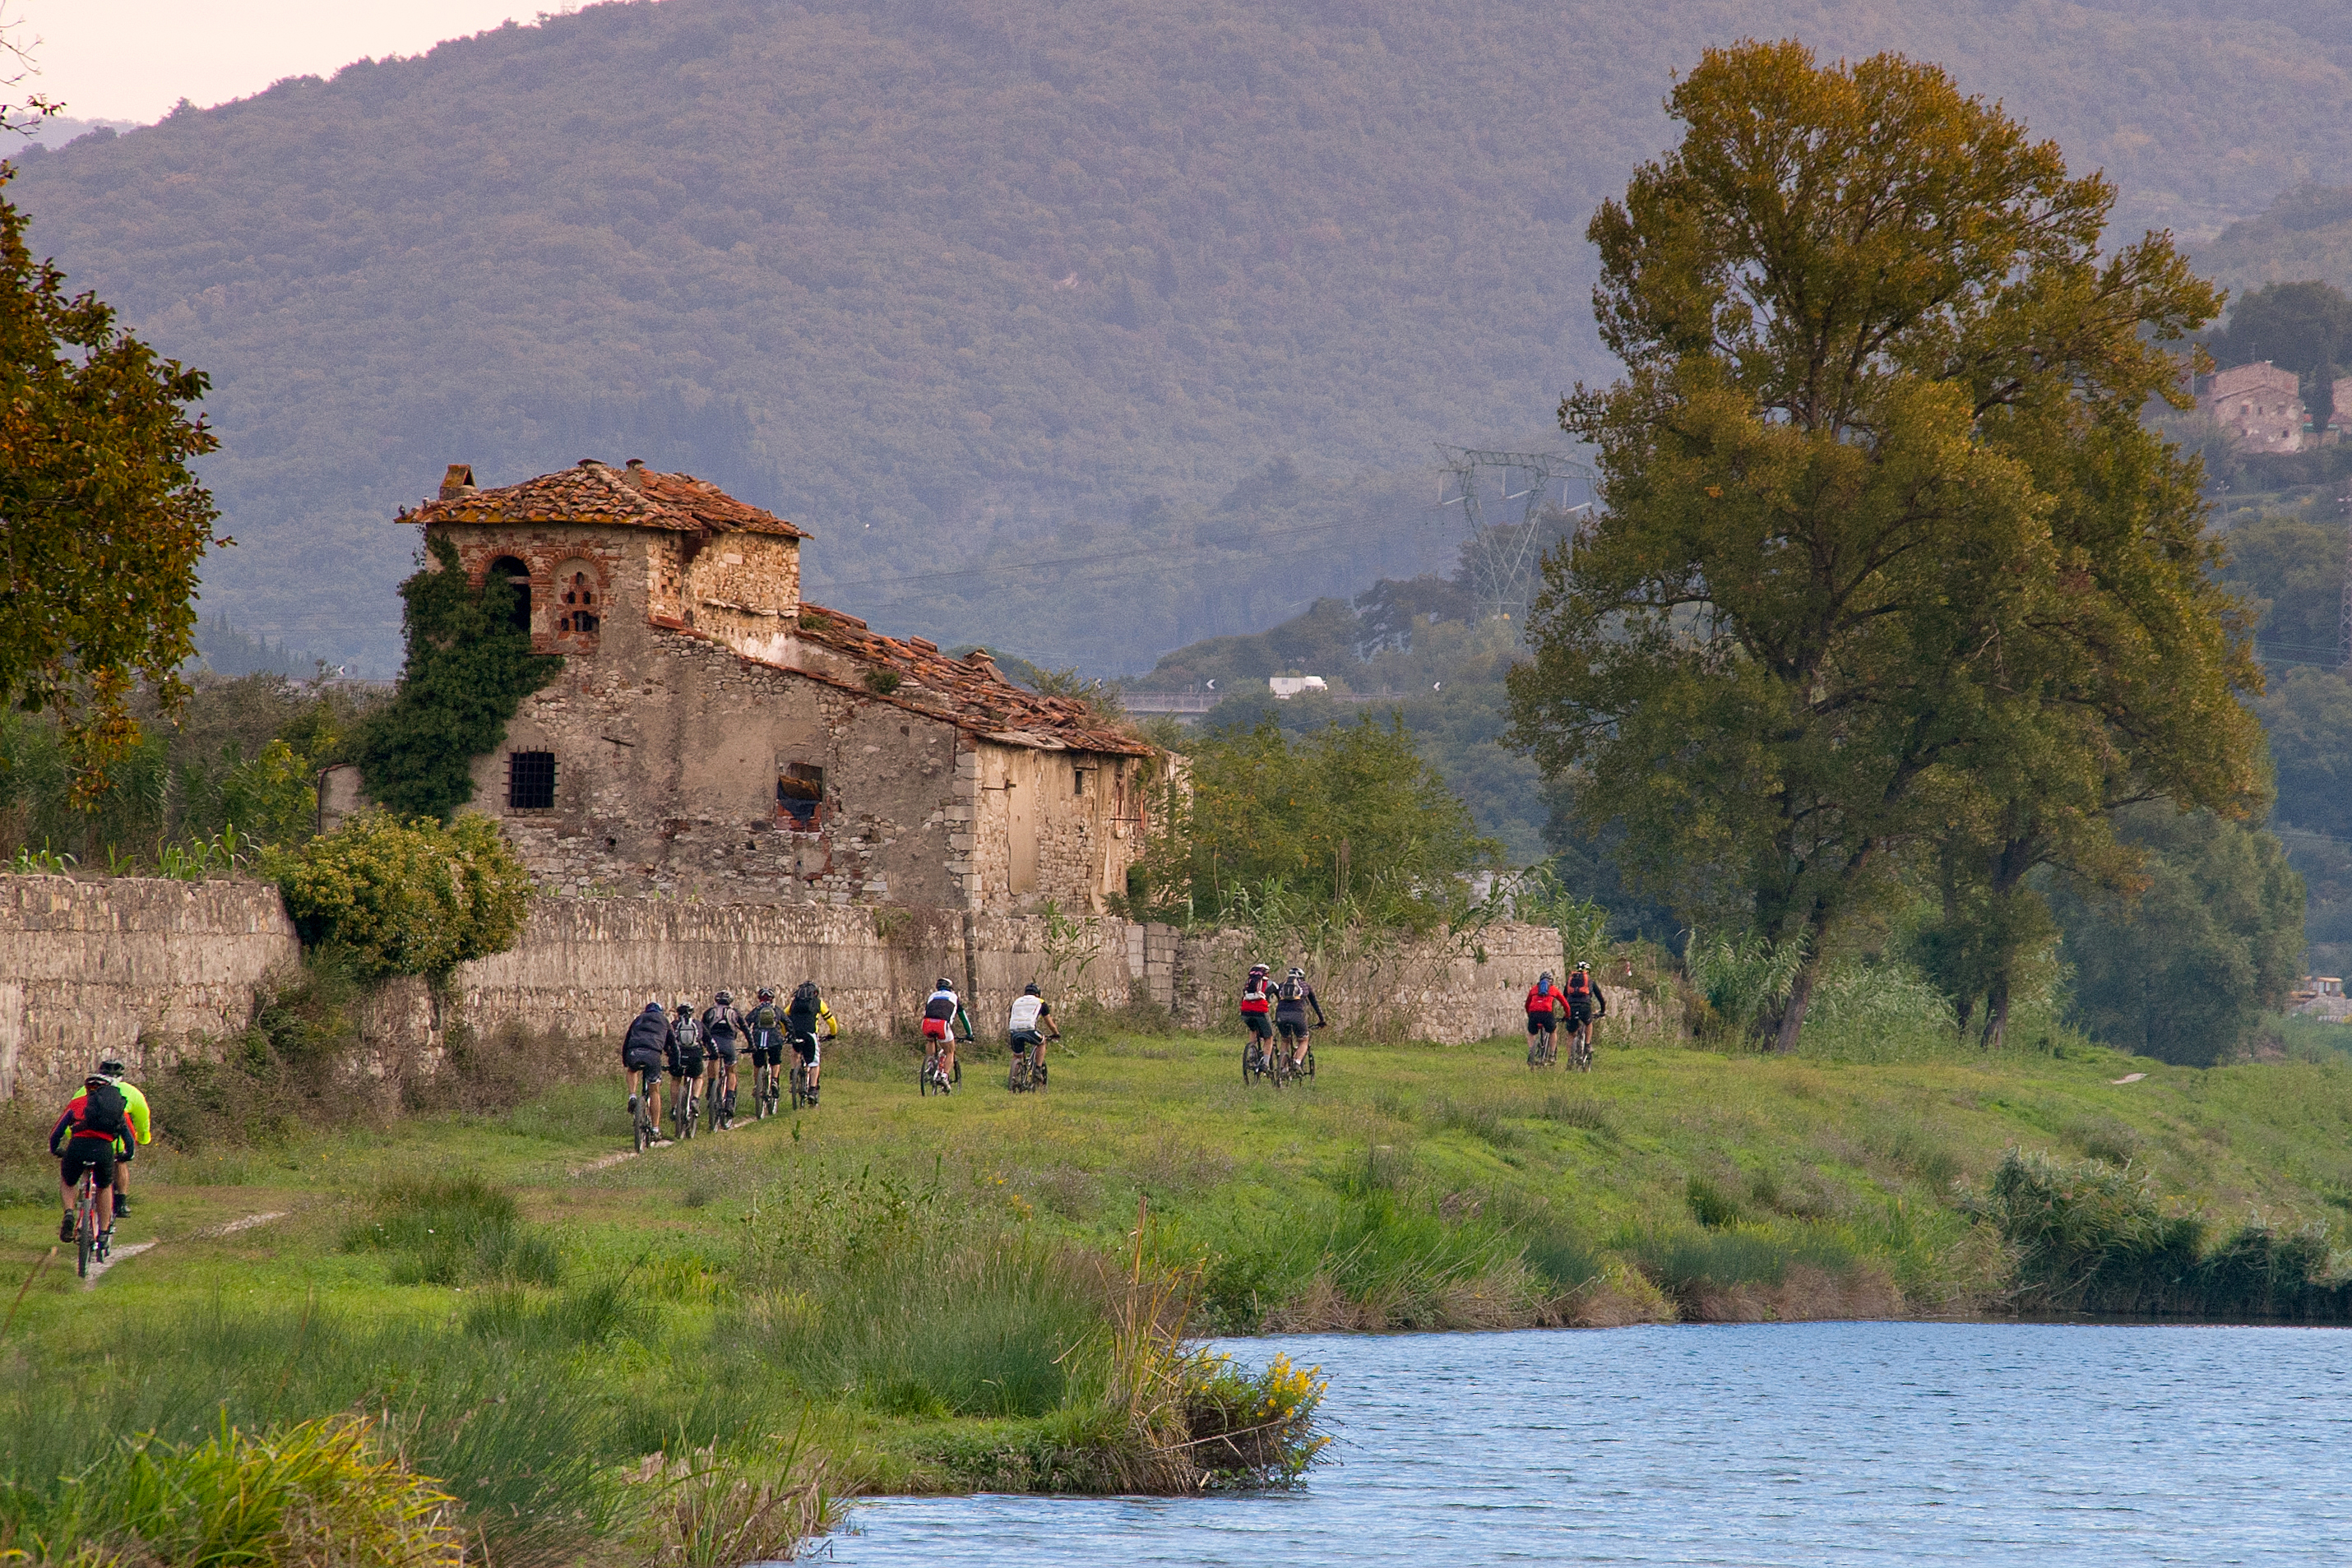 Florence Tuscany - climb with mountain bike from the artificial lakes to Mount Calvana up to the sum